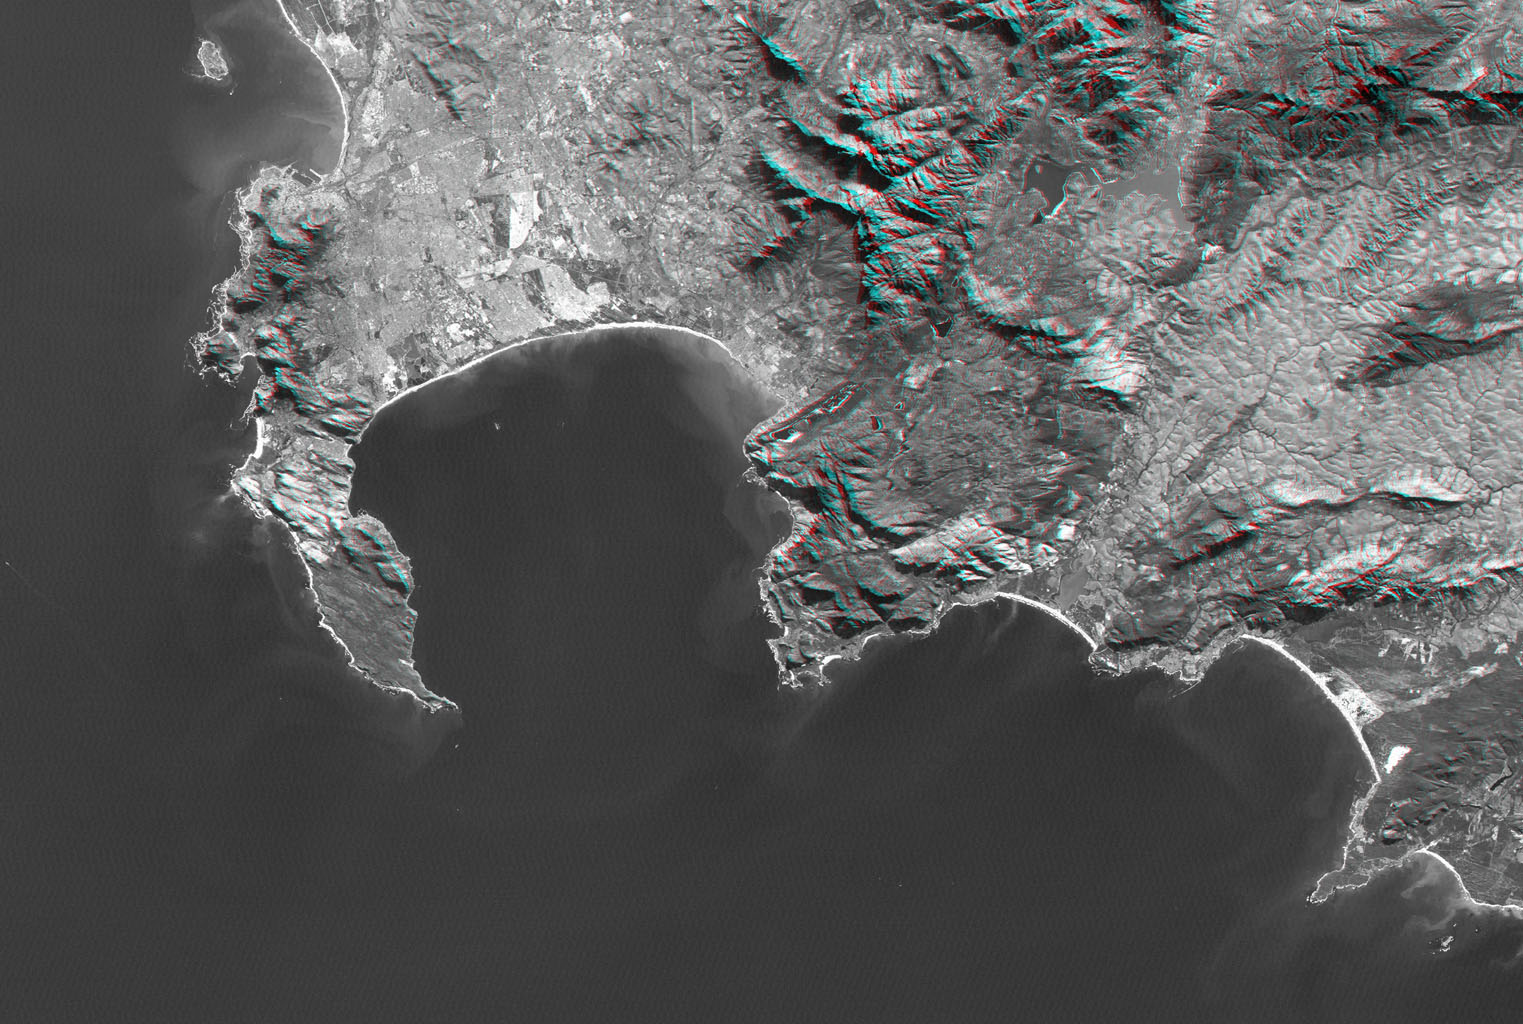 Cape Town and the Cape of Good Hope, South Africa, appear on the left (west) of this anaglyph from NASA's Shuttle Radar Topography Mission. 3D glasses are necessary to view this image.